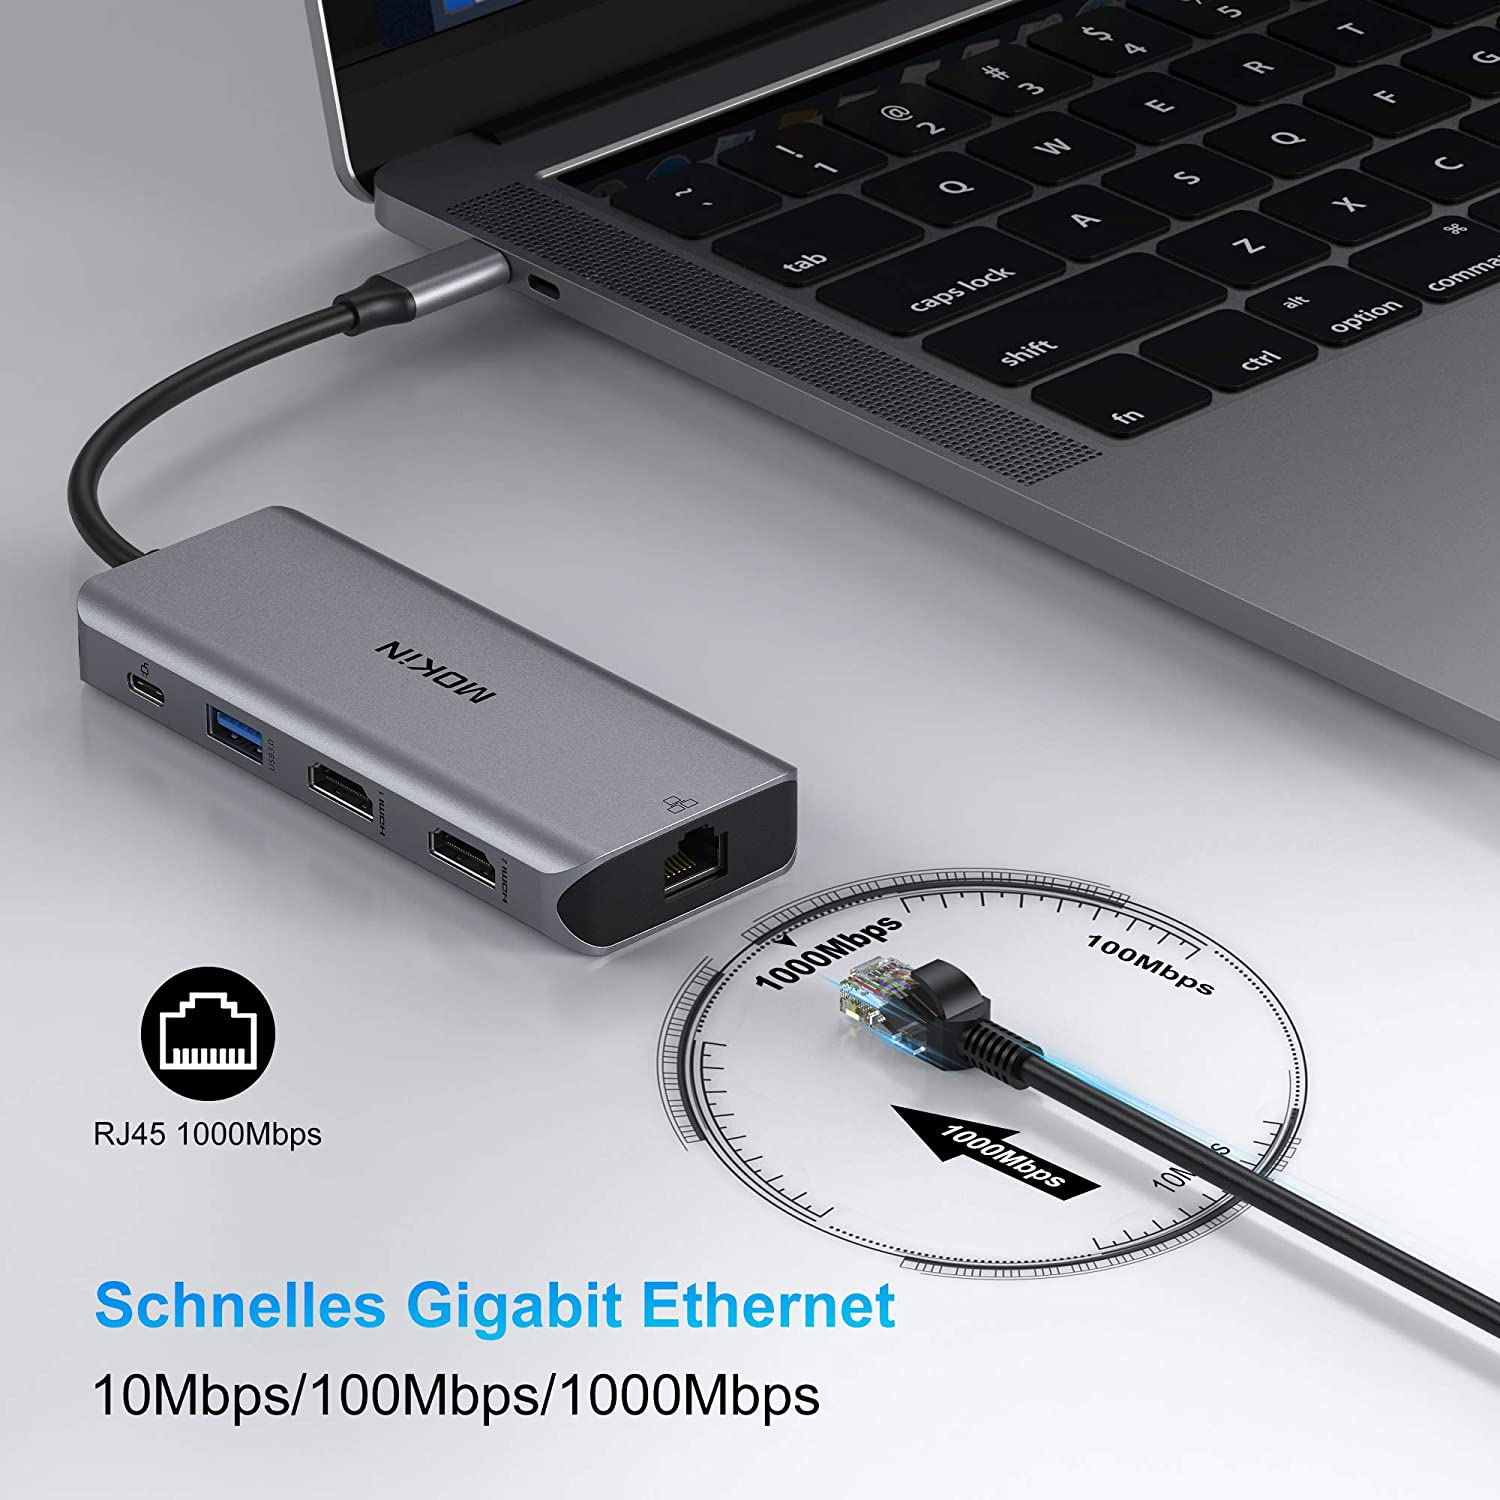 USB C Dual HDMI Adapter, USB C Laptop Docking Station 9 in 1 Triple Display Multiport Dongle, Type C Hub with 2 HDMI, 100W PD, Ethernet, 3 USB and SD/TF Card Reader for MacBook Pro Air and Windows